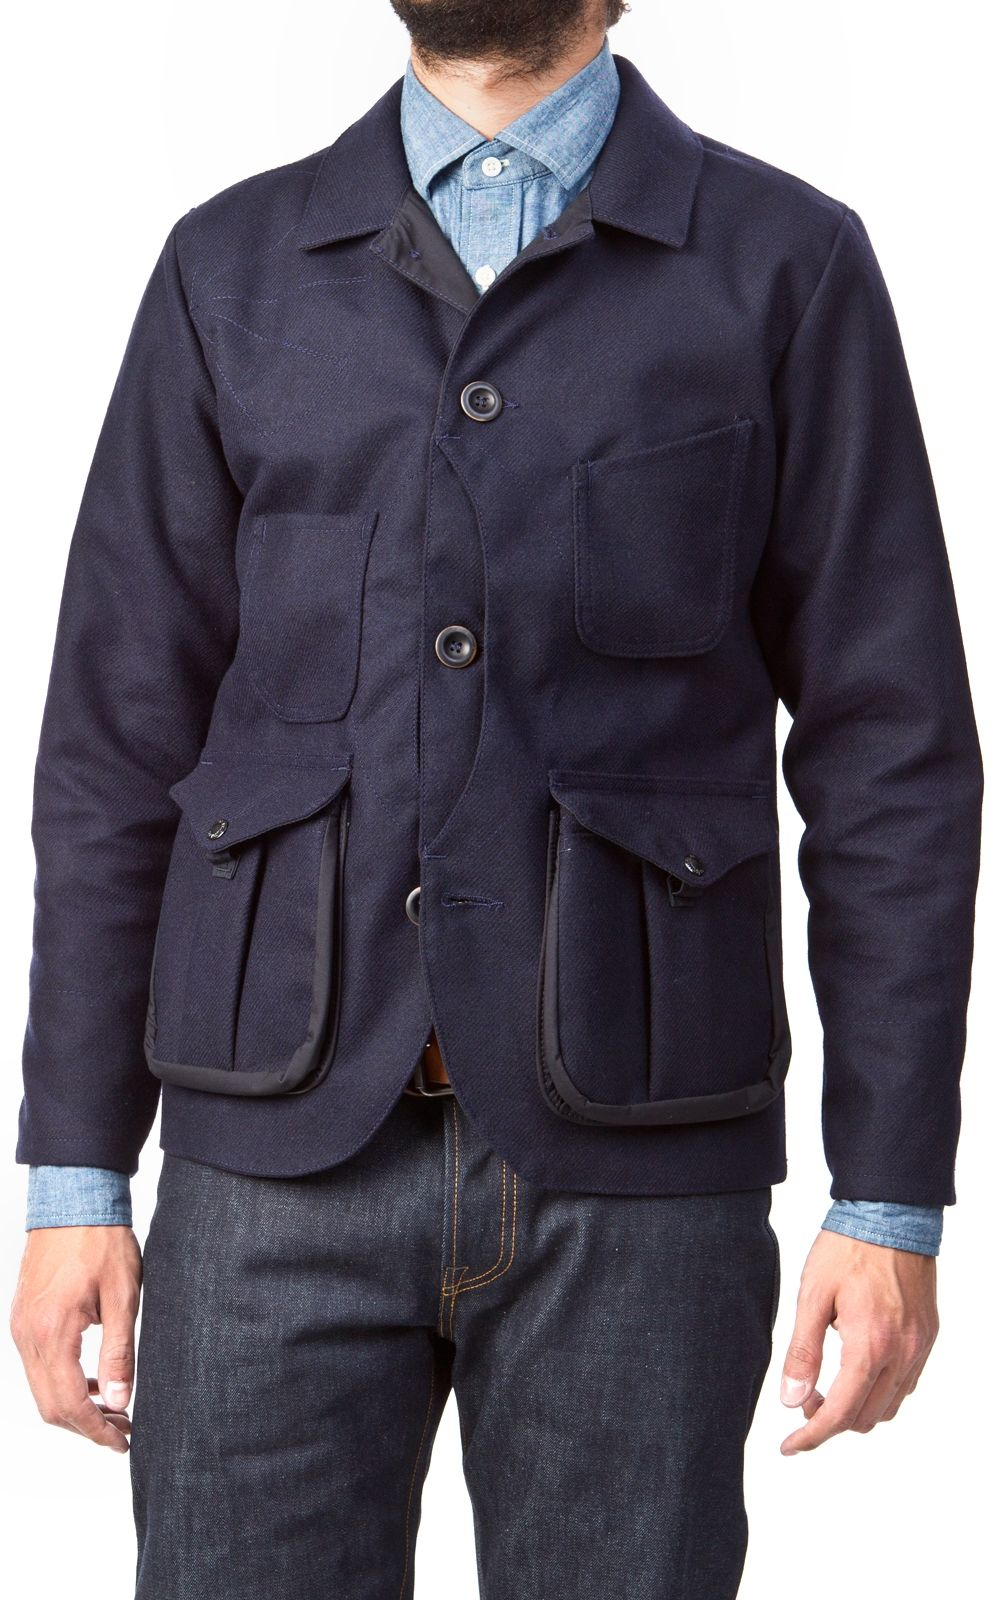 6b0a58ebdee8d Cultizm.com - Guide Work Jacket Bonded Wool Navy   Olive Filson Guide Work  Jacket Bonded Wool Navy   Olive 104134171